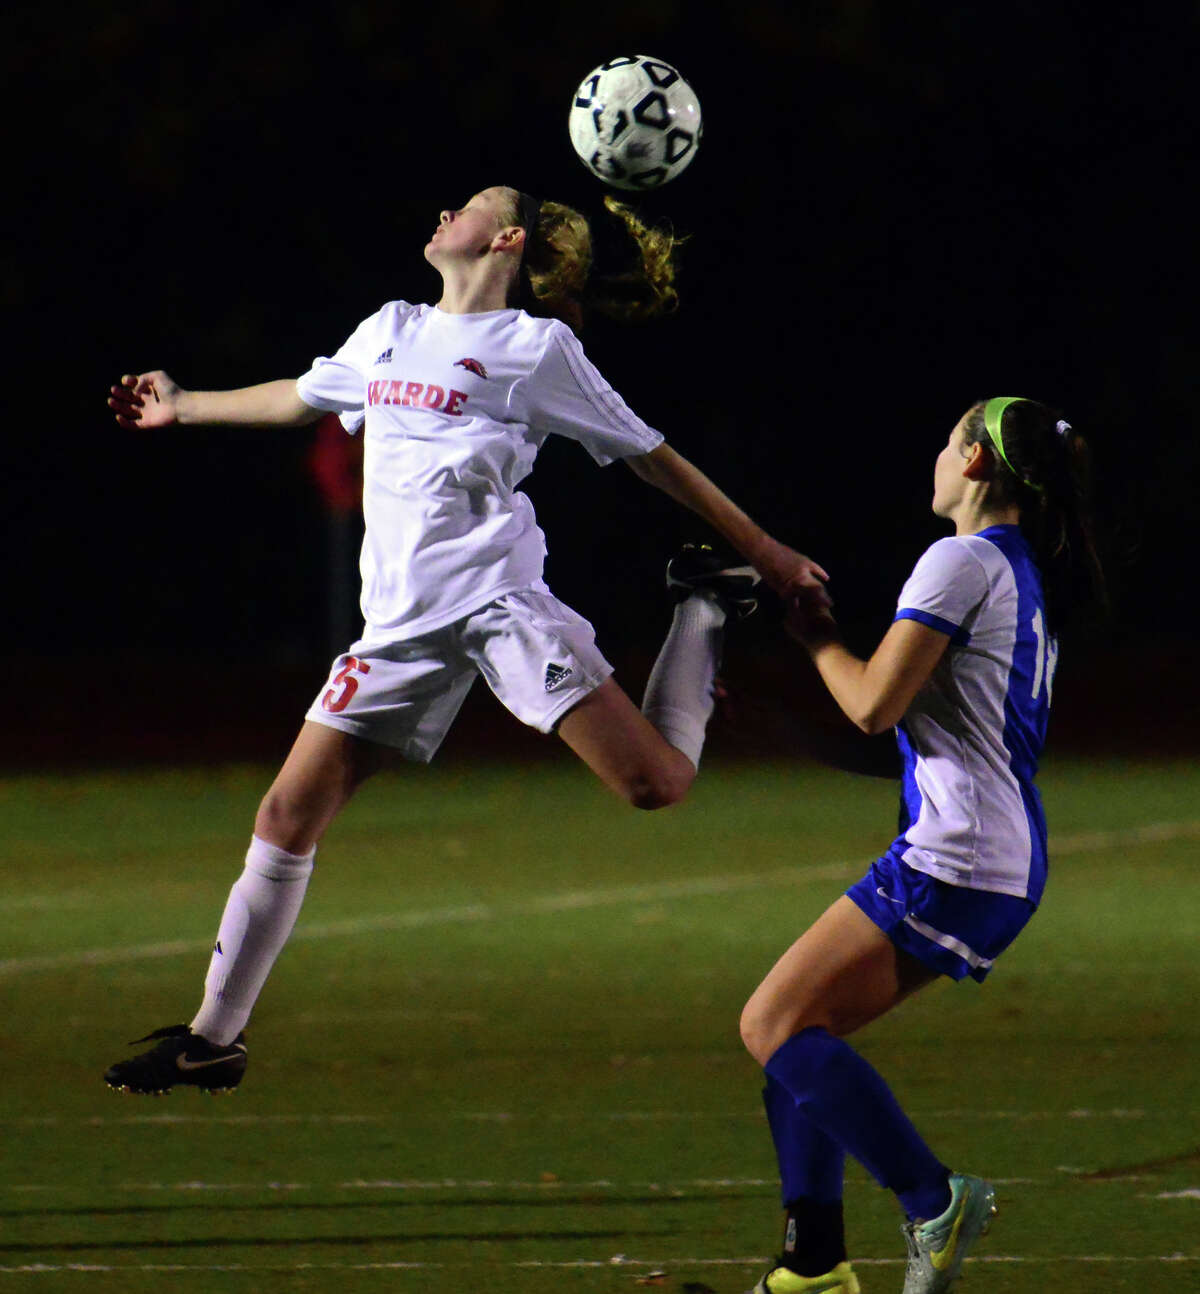 Fairfield Warde's Lauren Tangney heads the ball during second round of CIAC Girls Soccer Tournament action against Hall in Fairfield, Conn., on Wednesday Nov. 11, 2015.